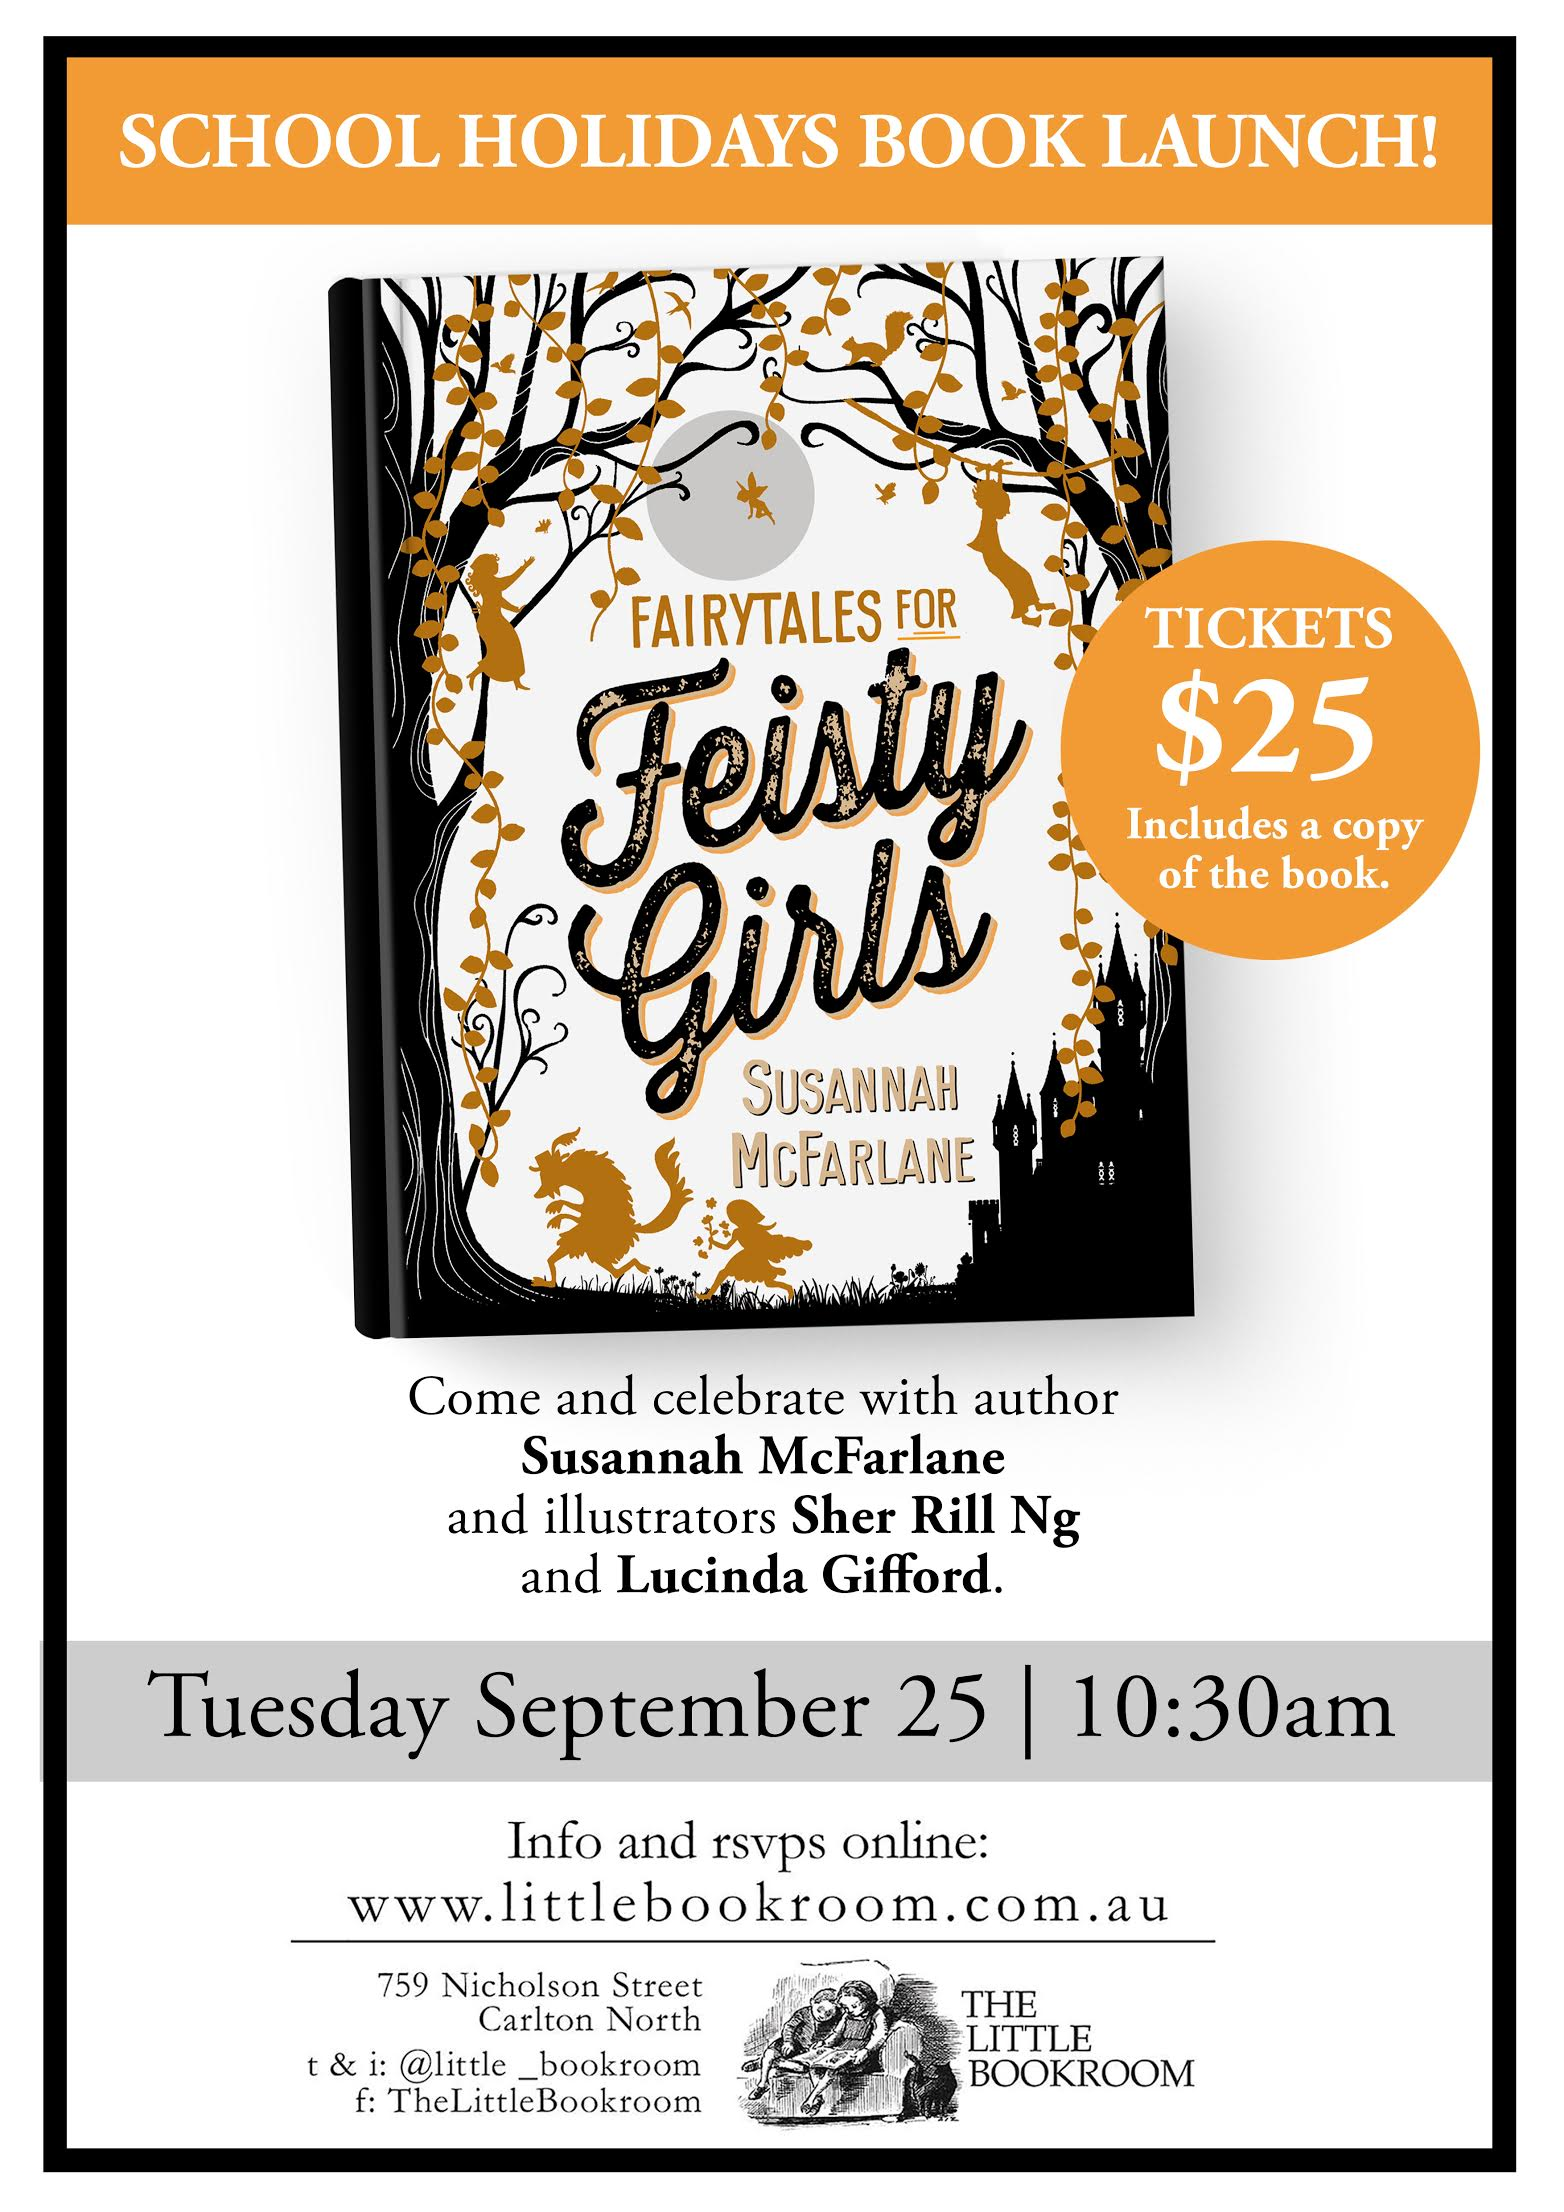 Fairytales For Feisty Girls Book Launch Tuesday September 25 10:30am